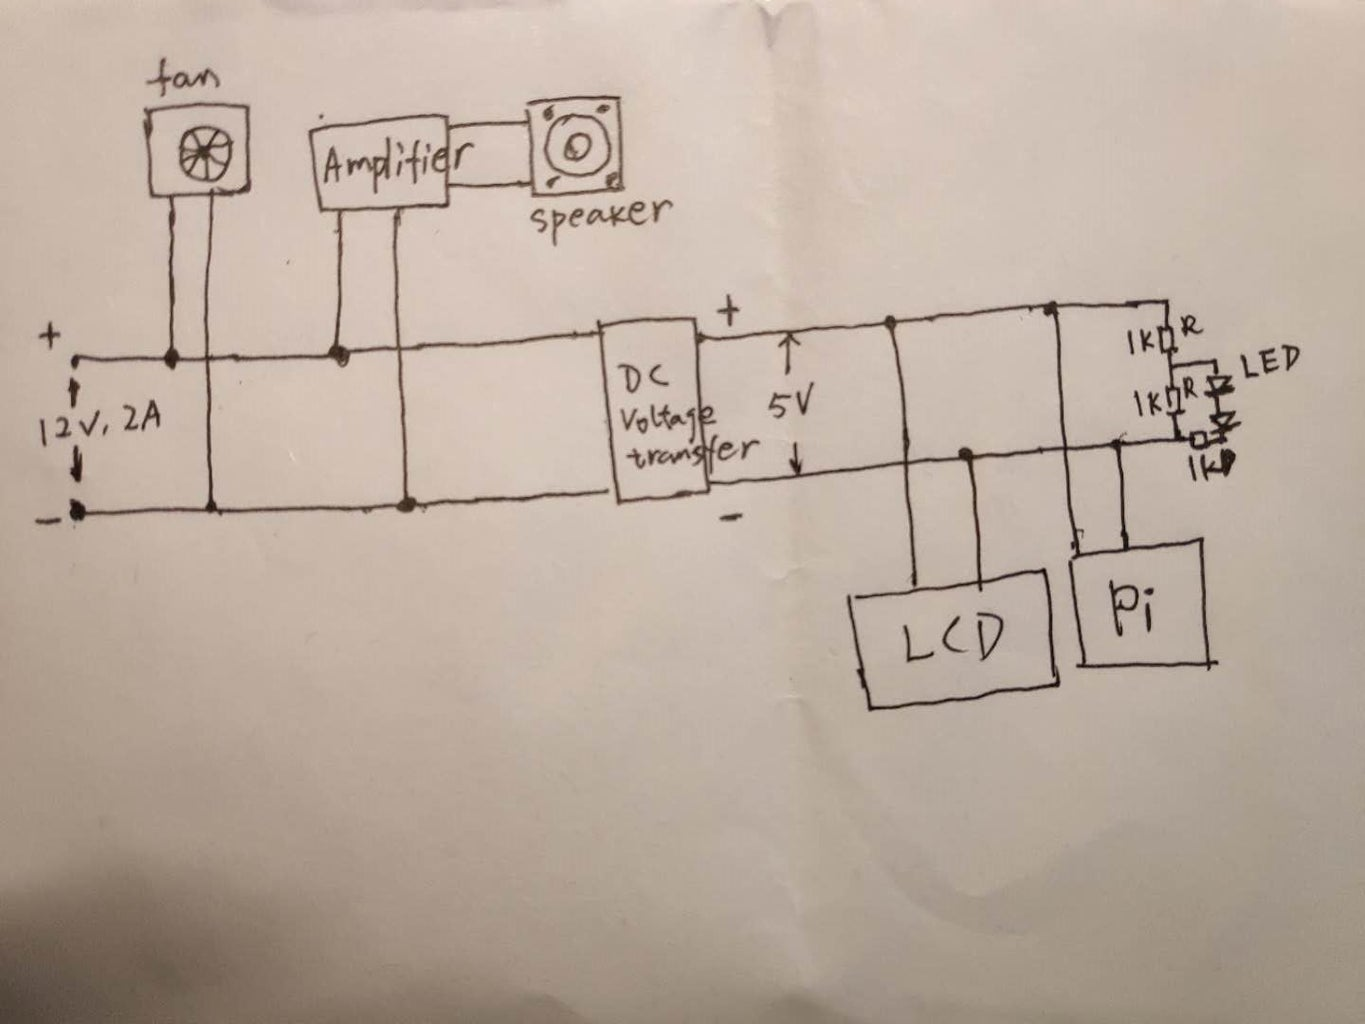 Electronic Connection and Assembling